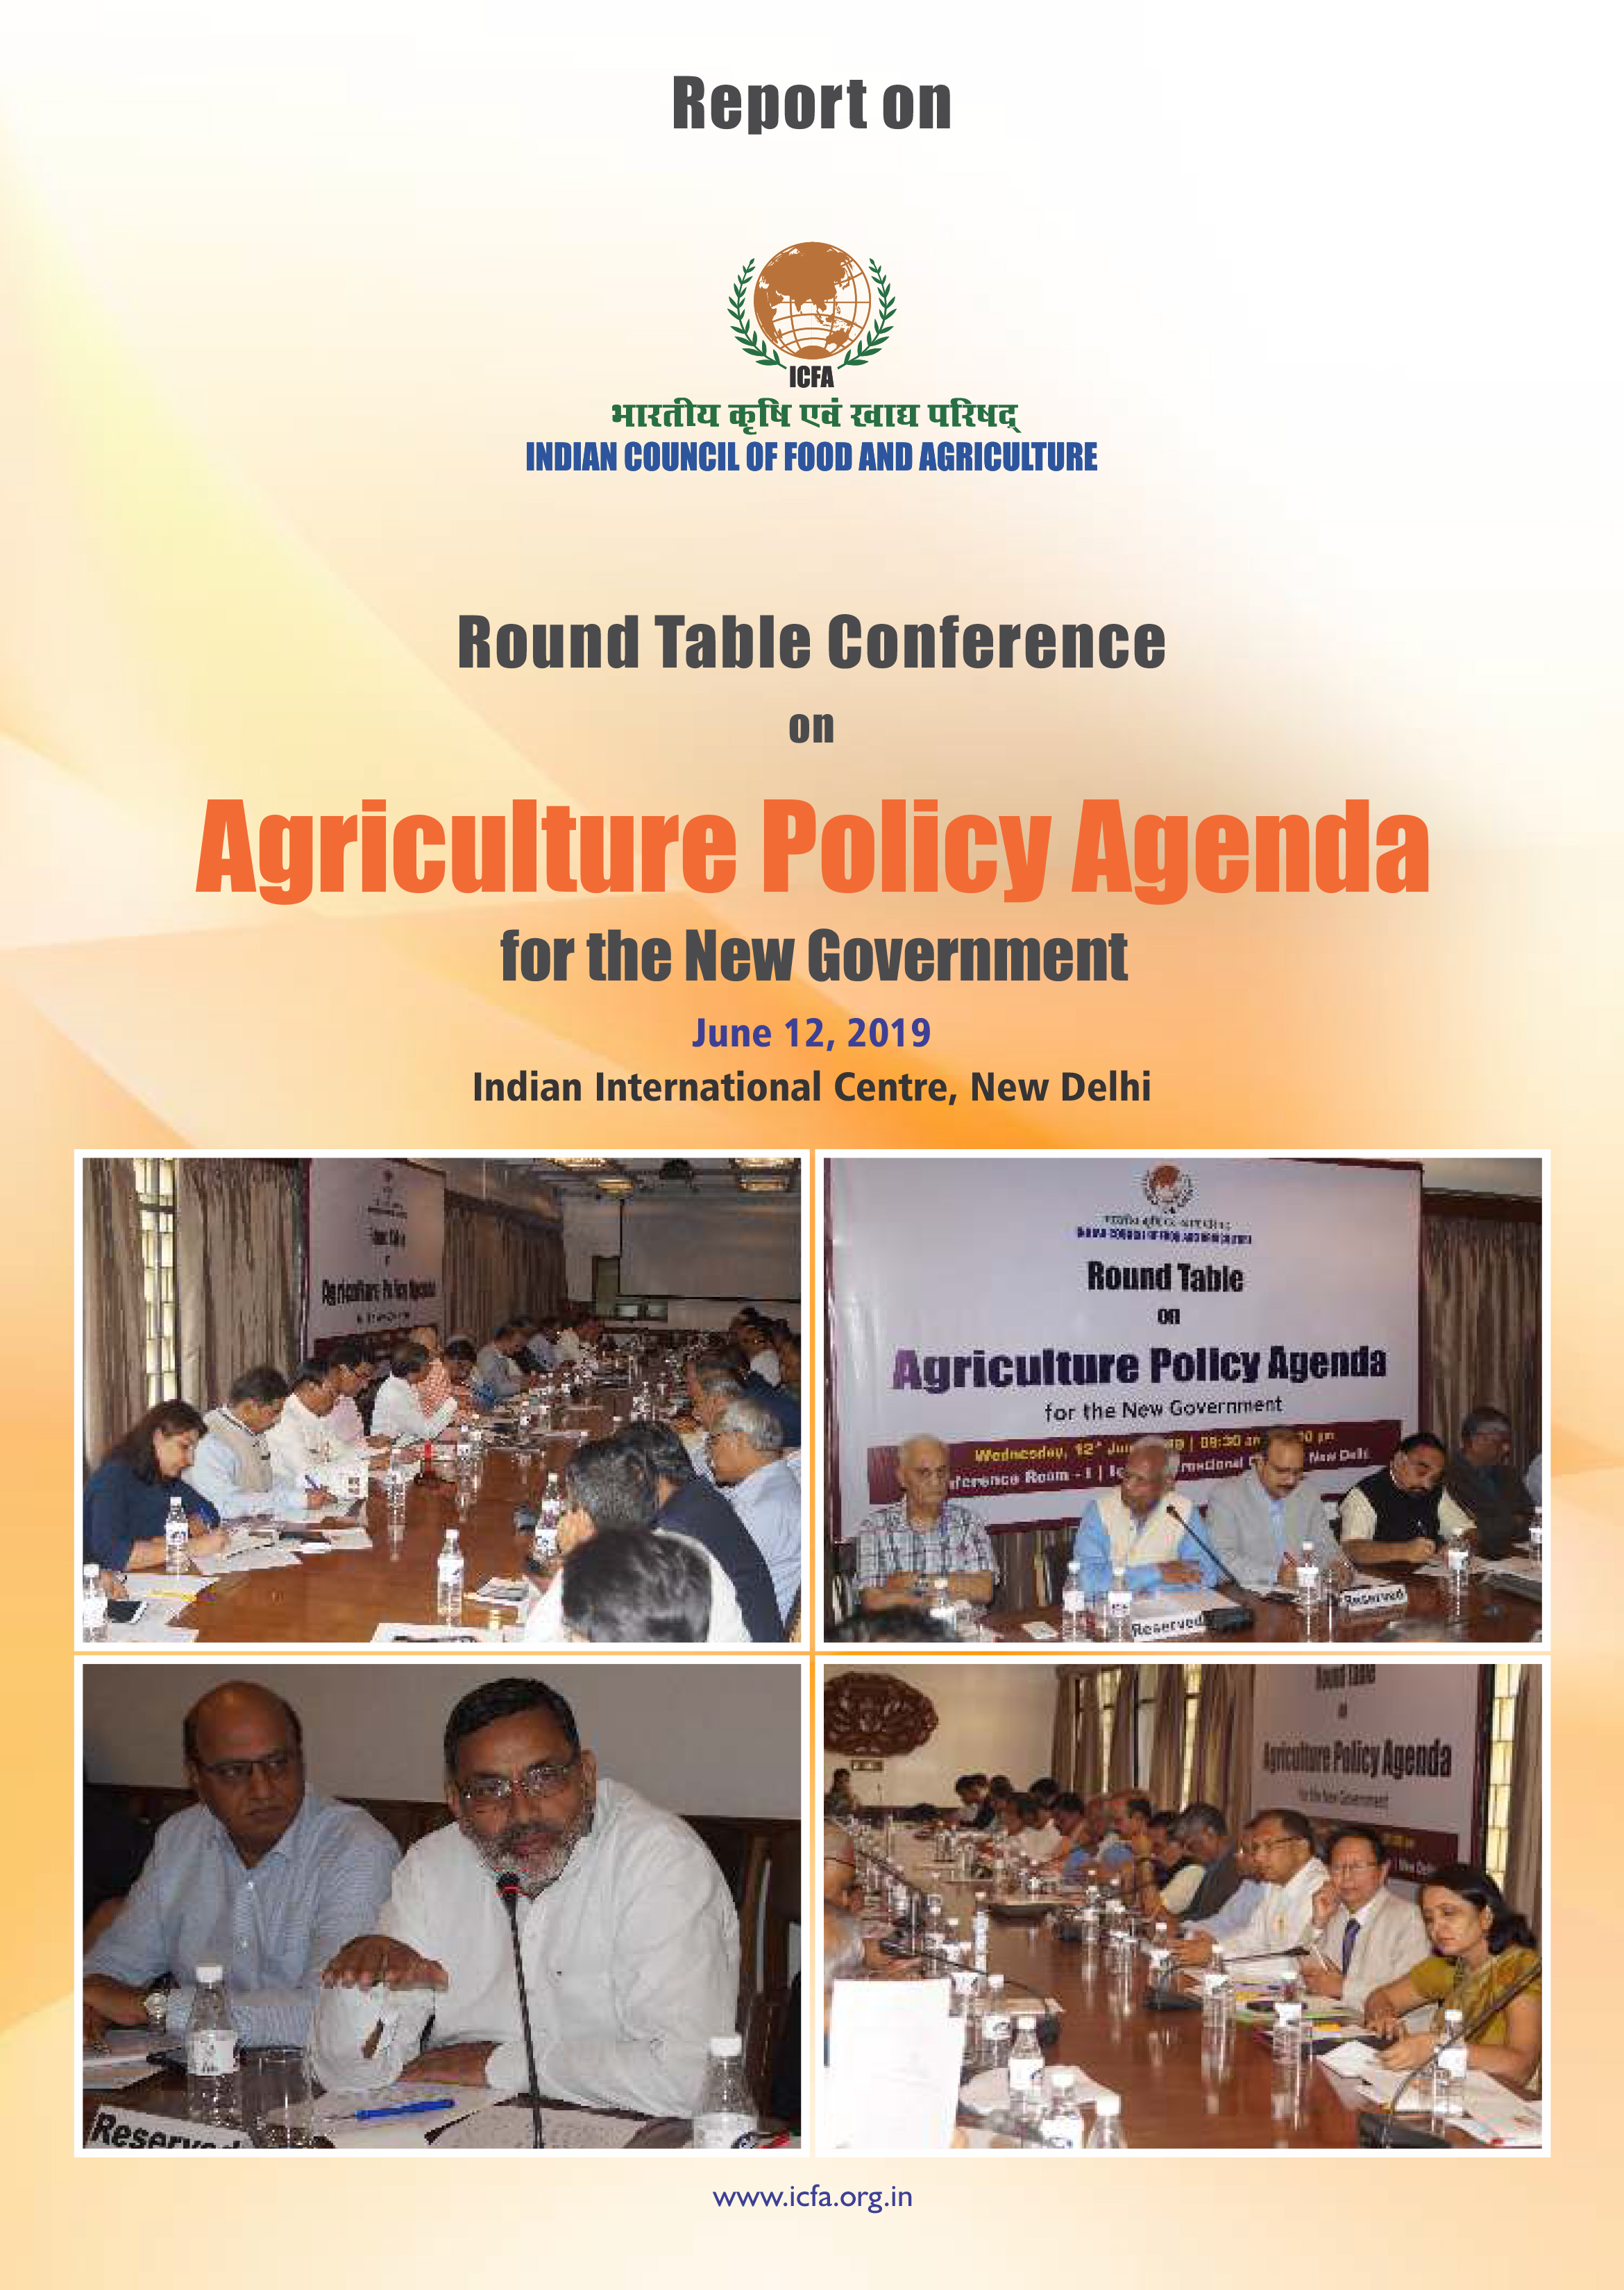 Agriculture Policy Agenda for the New Government